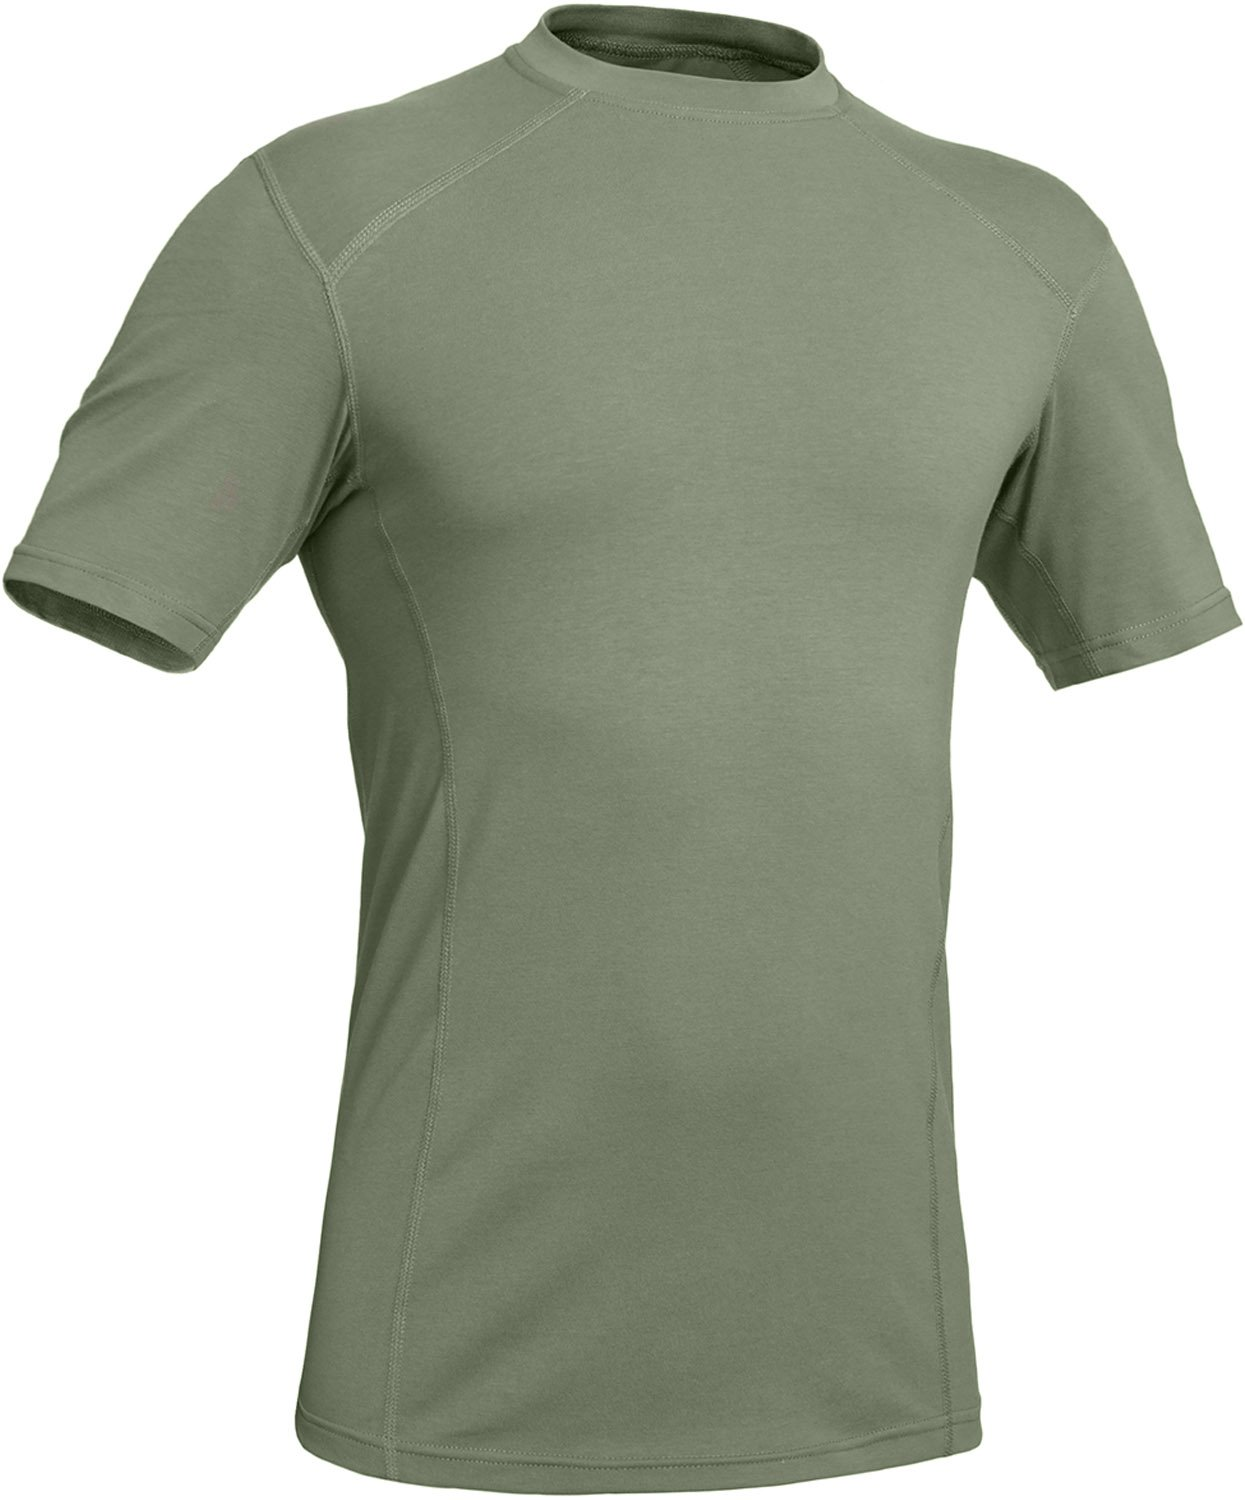 281Z Military Stretch Cotton Underwear T-Shirt - Tactical Hiking Outdoor - Punisher Combat Line (Olive Drab, Large) by 281Z (Image #1)